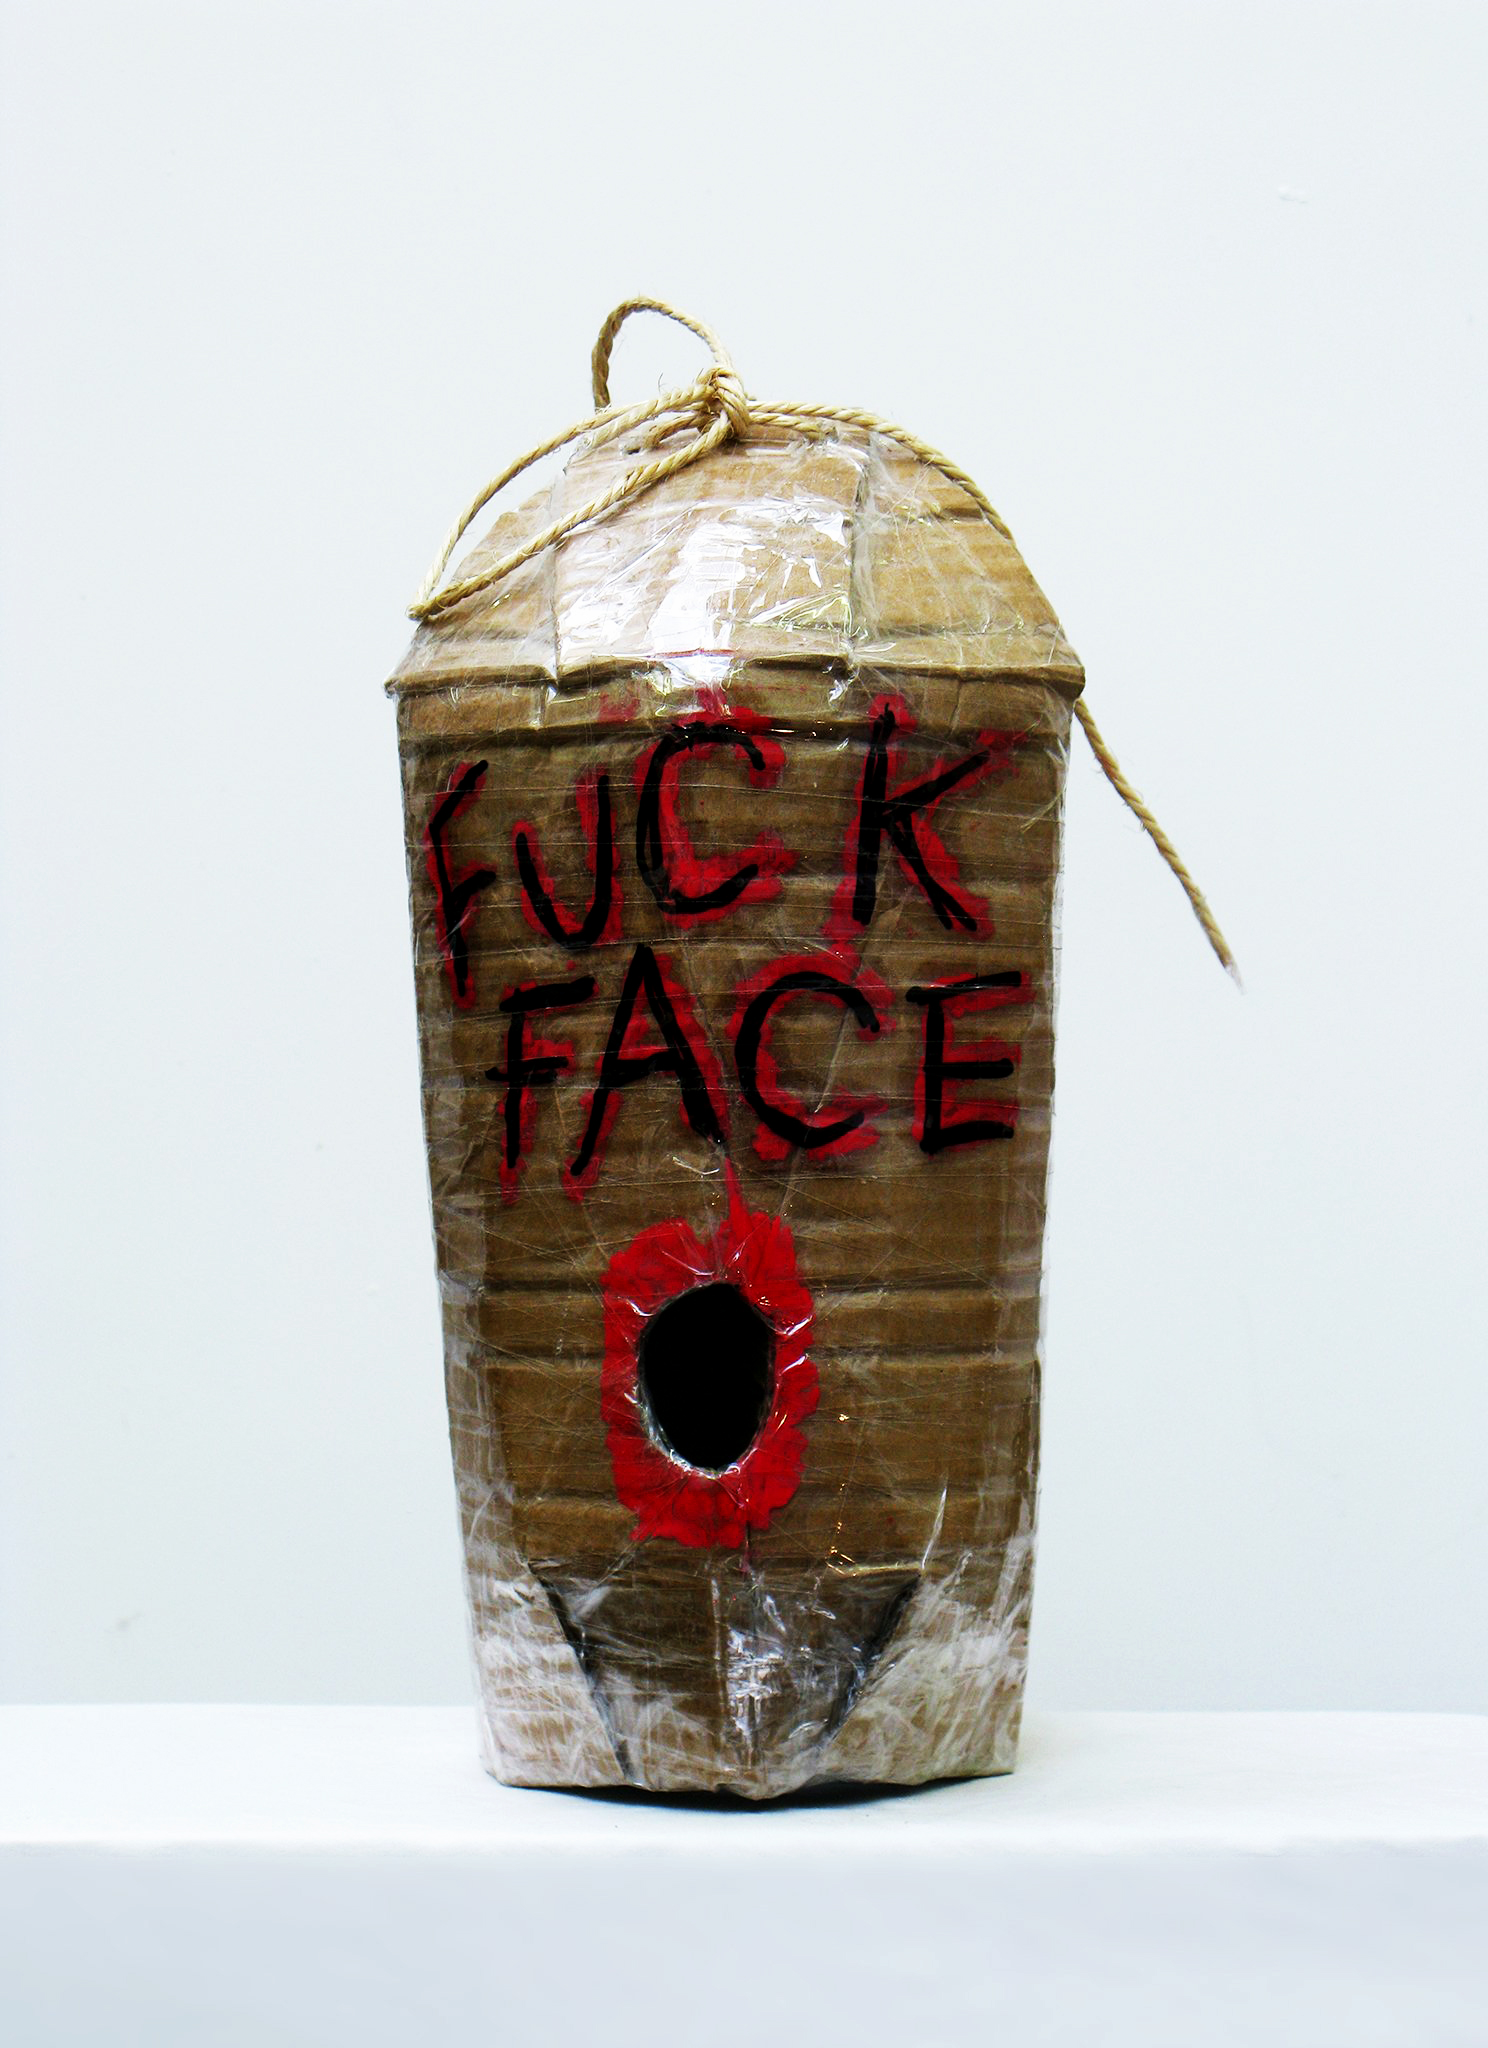 David Harrison: Pass the Parcel (Mobile Glory Hole) (2012). Tape, cardboard and mixed media 32 x 17 x 25 cm 12 5/8 x 6 3/4 x 9 7/8 in